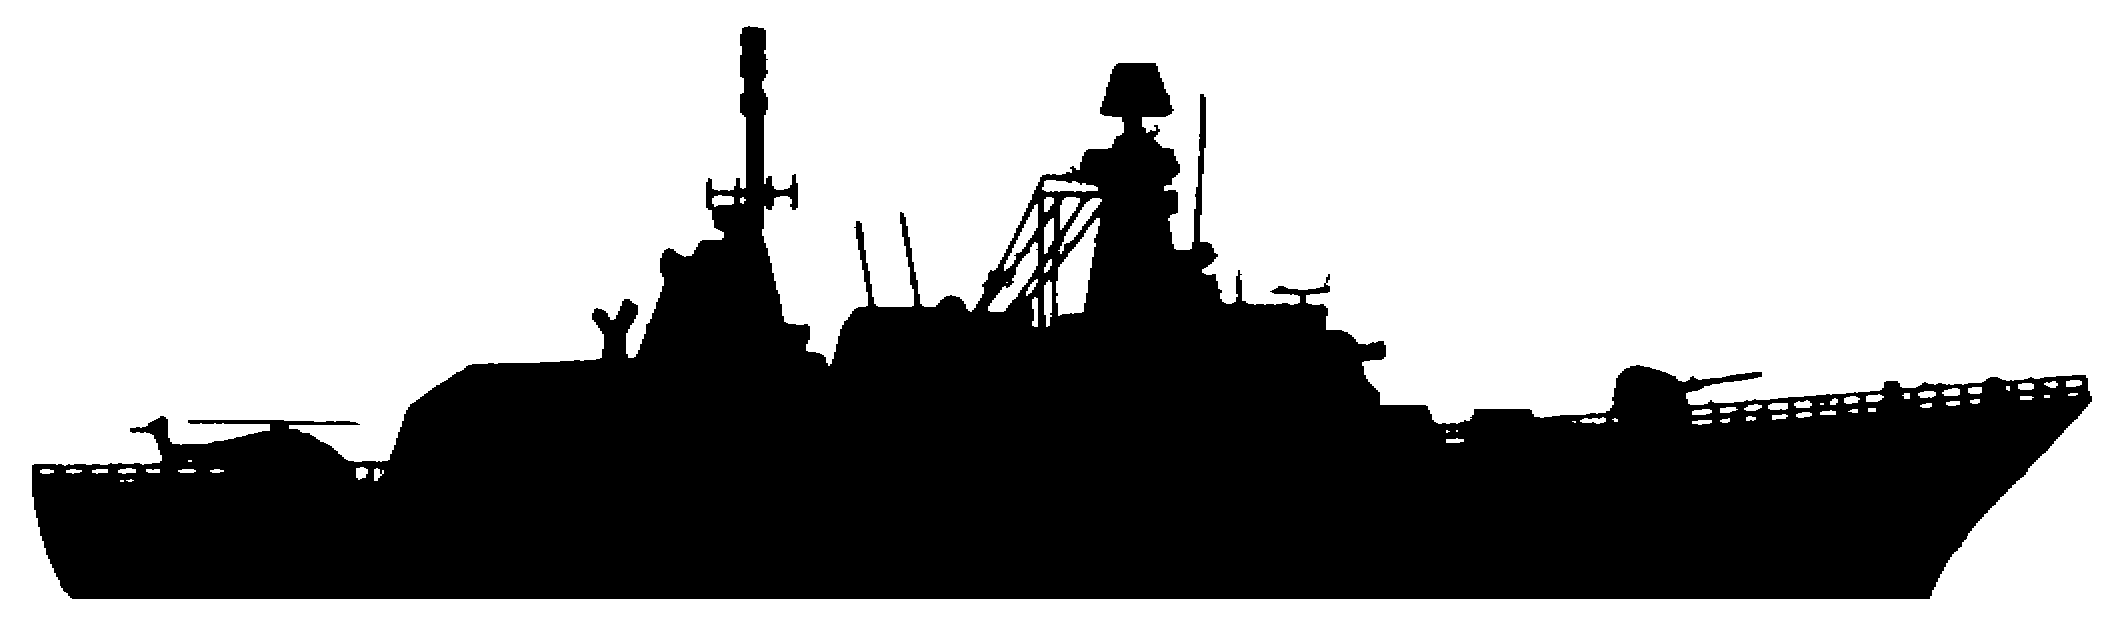 2115x621 Navy Ship Silhouette Clipart Clip Art Library Pertaining To Navy